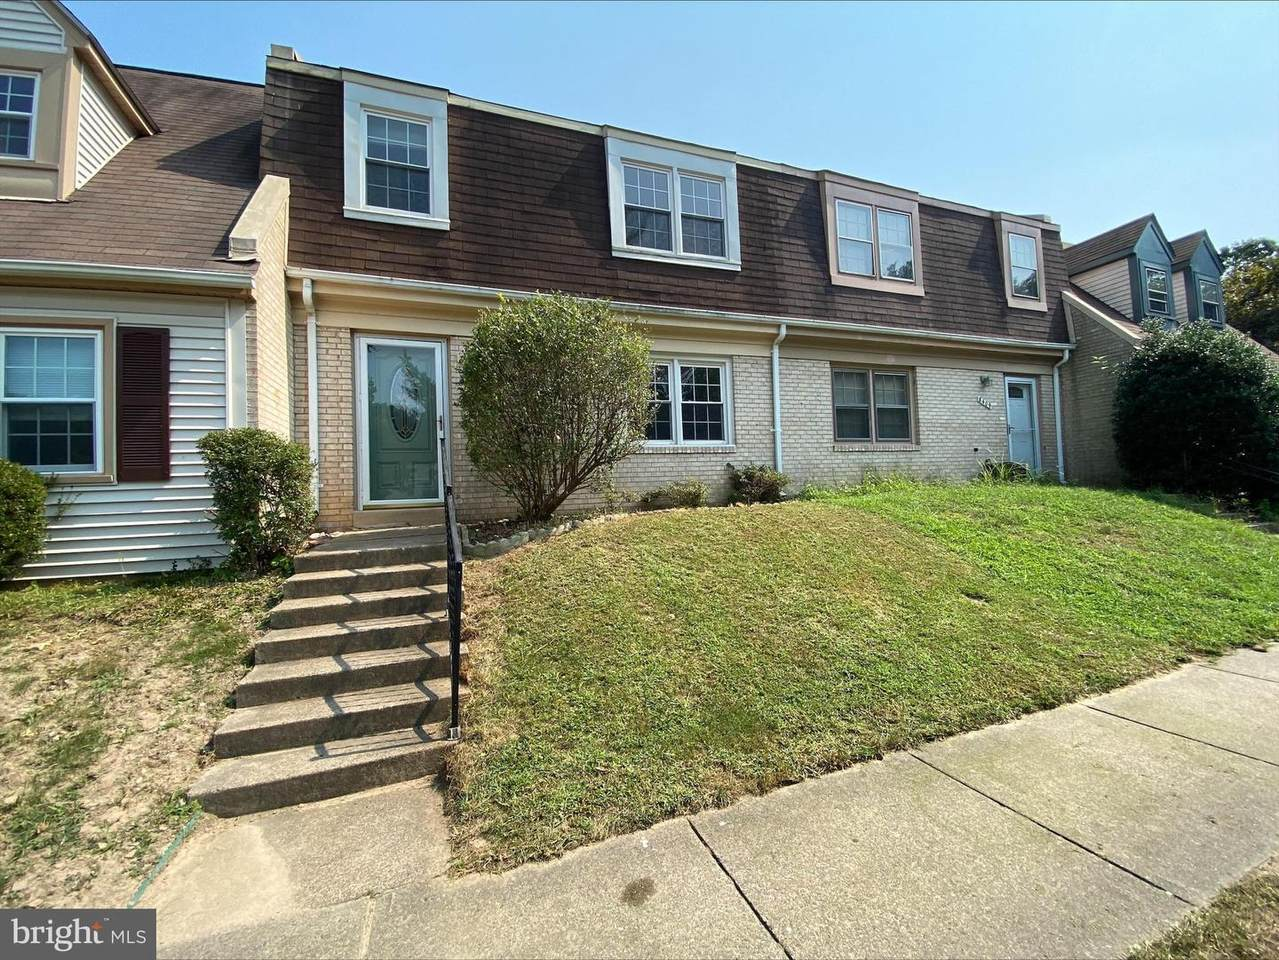 8407 Red Ash Court - Photo 1